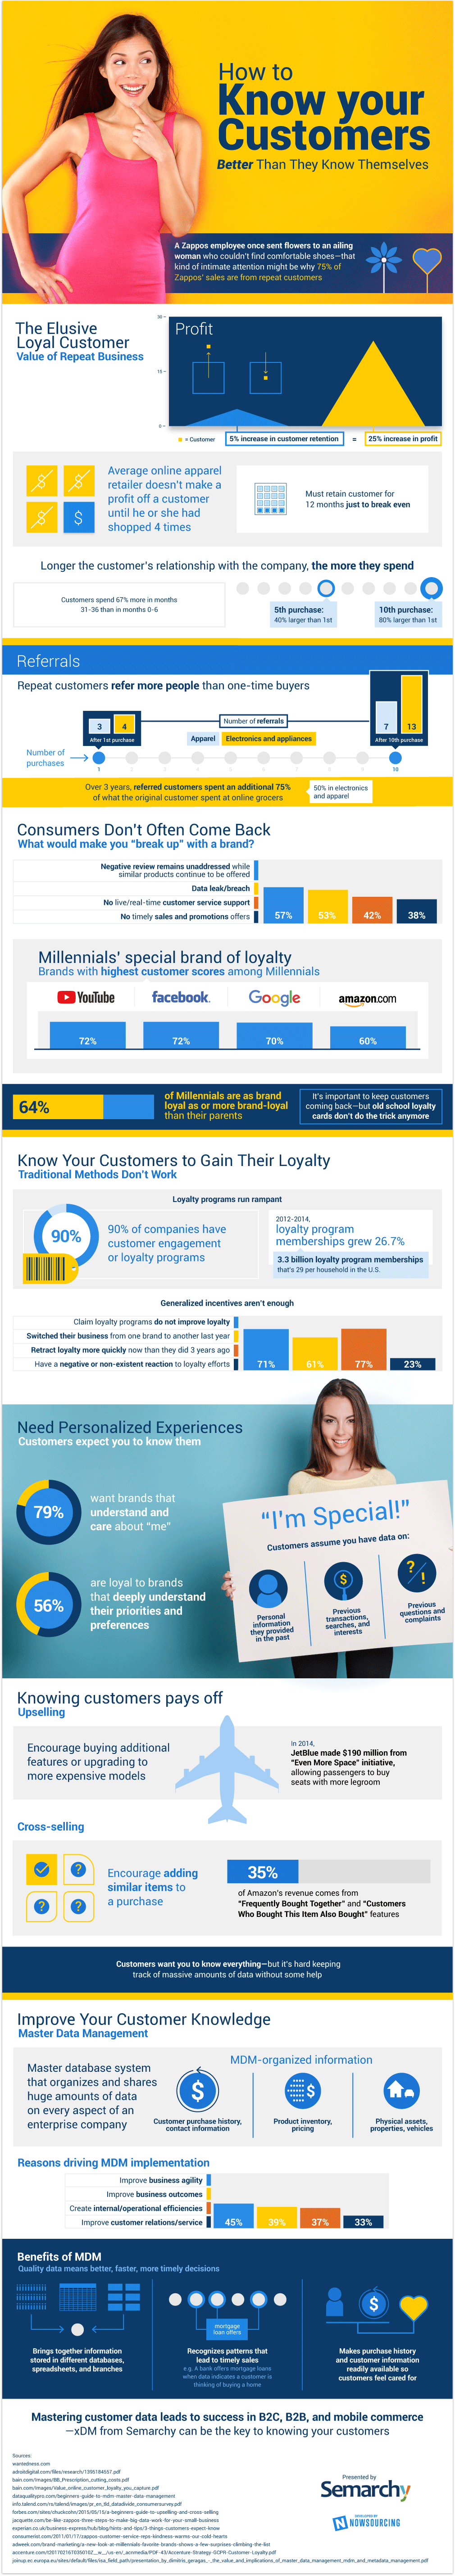 Knowing Your Customer The First Step To Staying In Business [Infographic]